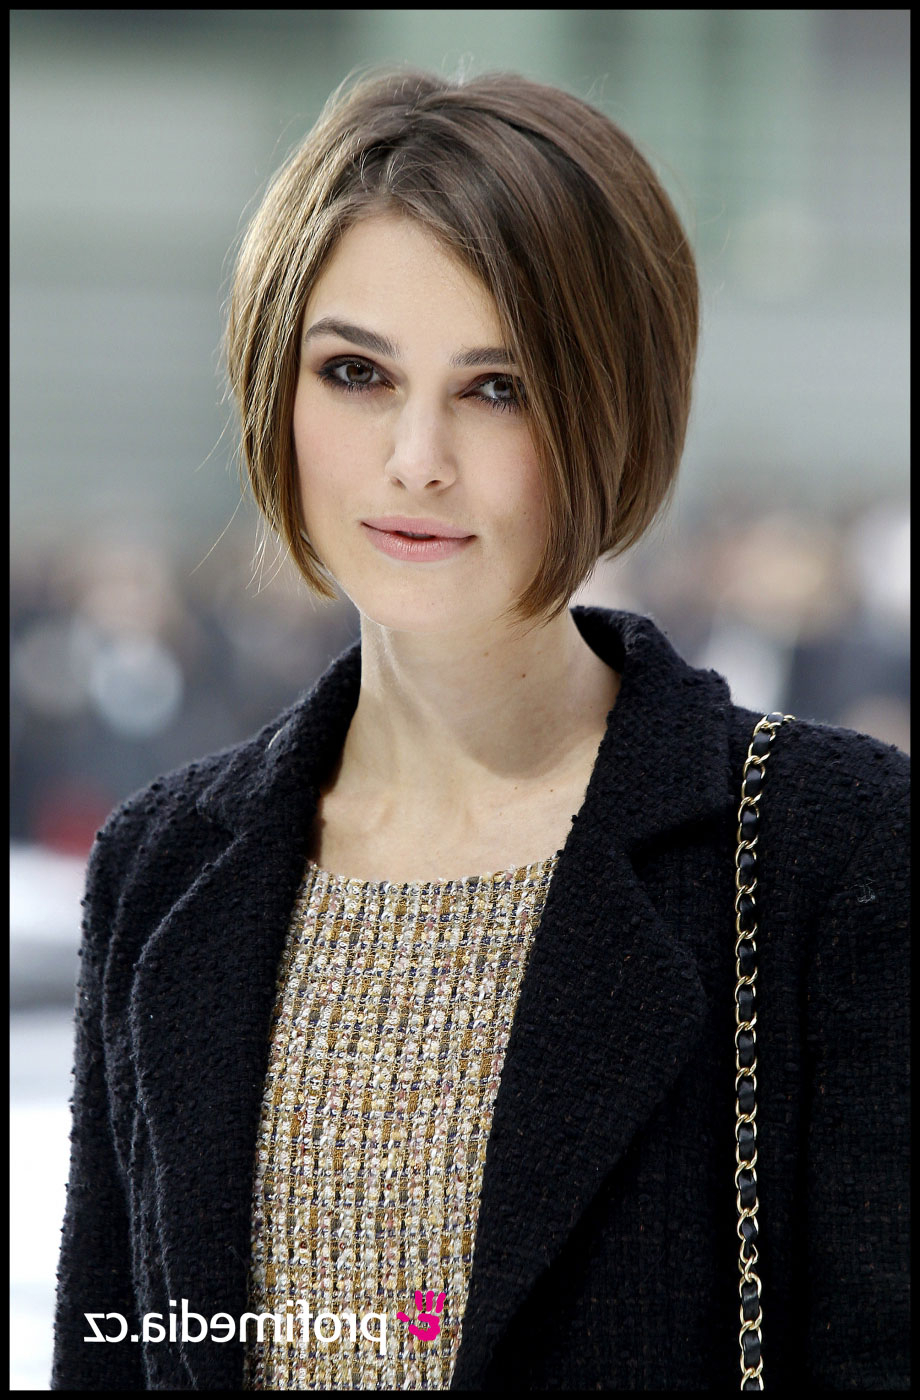 Celebrity Hairstyles Keira Knightley Intended For Widely Used Keira Knightley Medium Hairstyles (View 7 of 20)